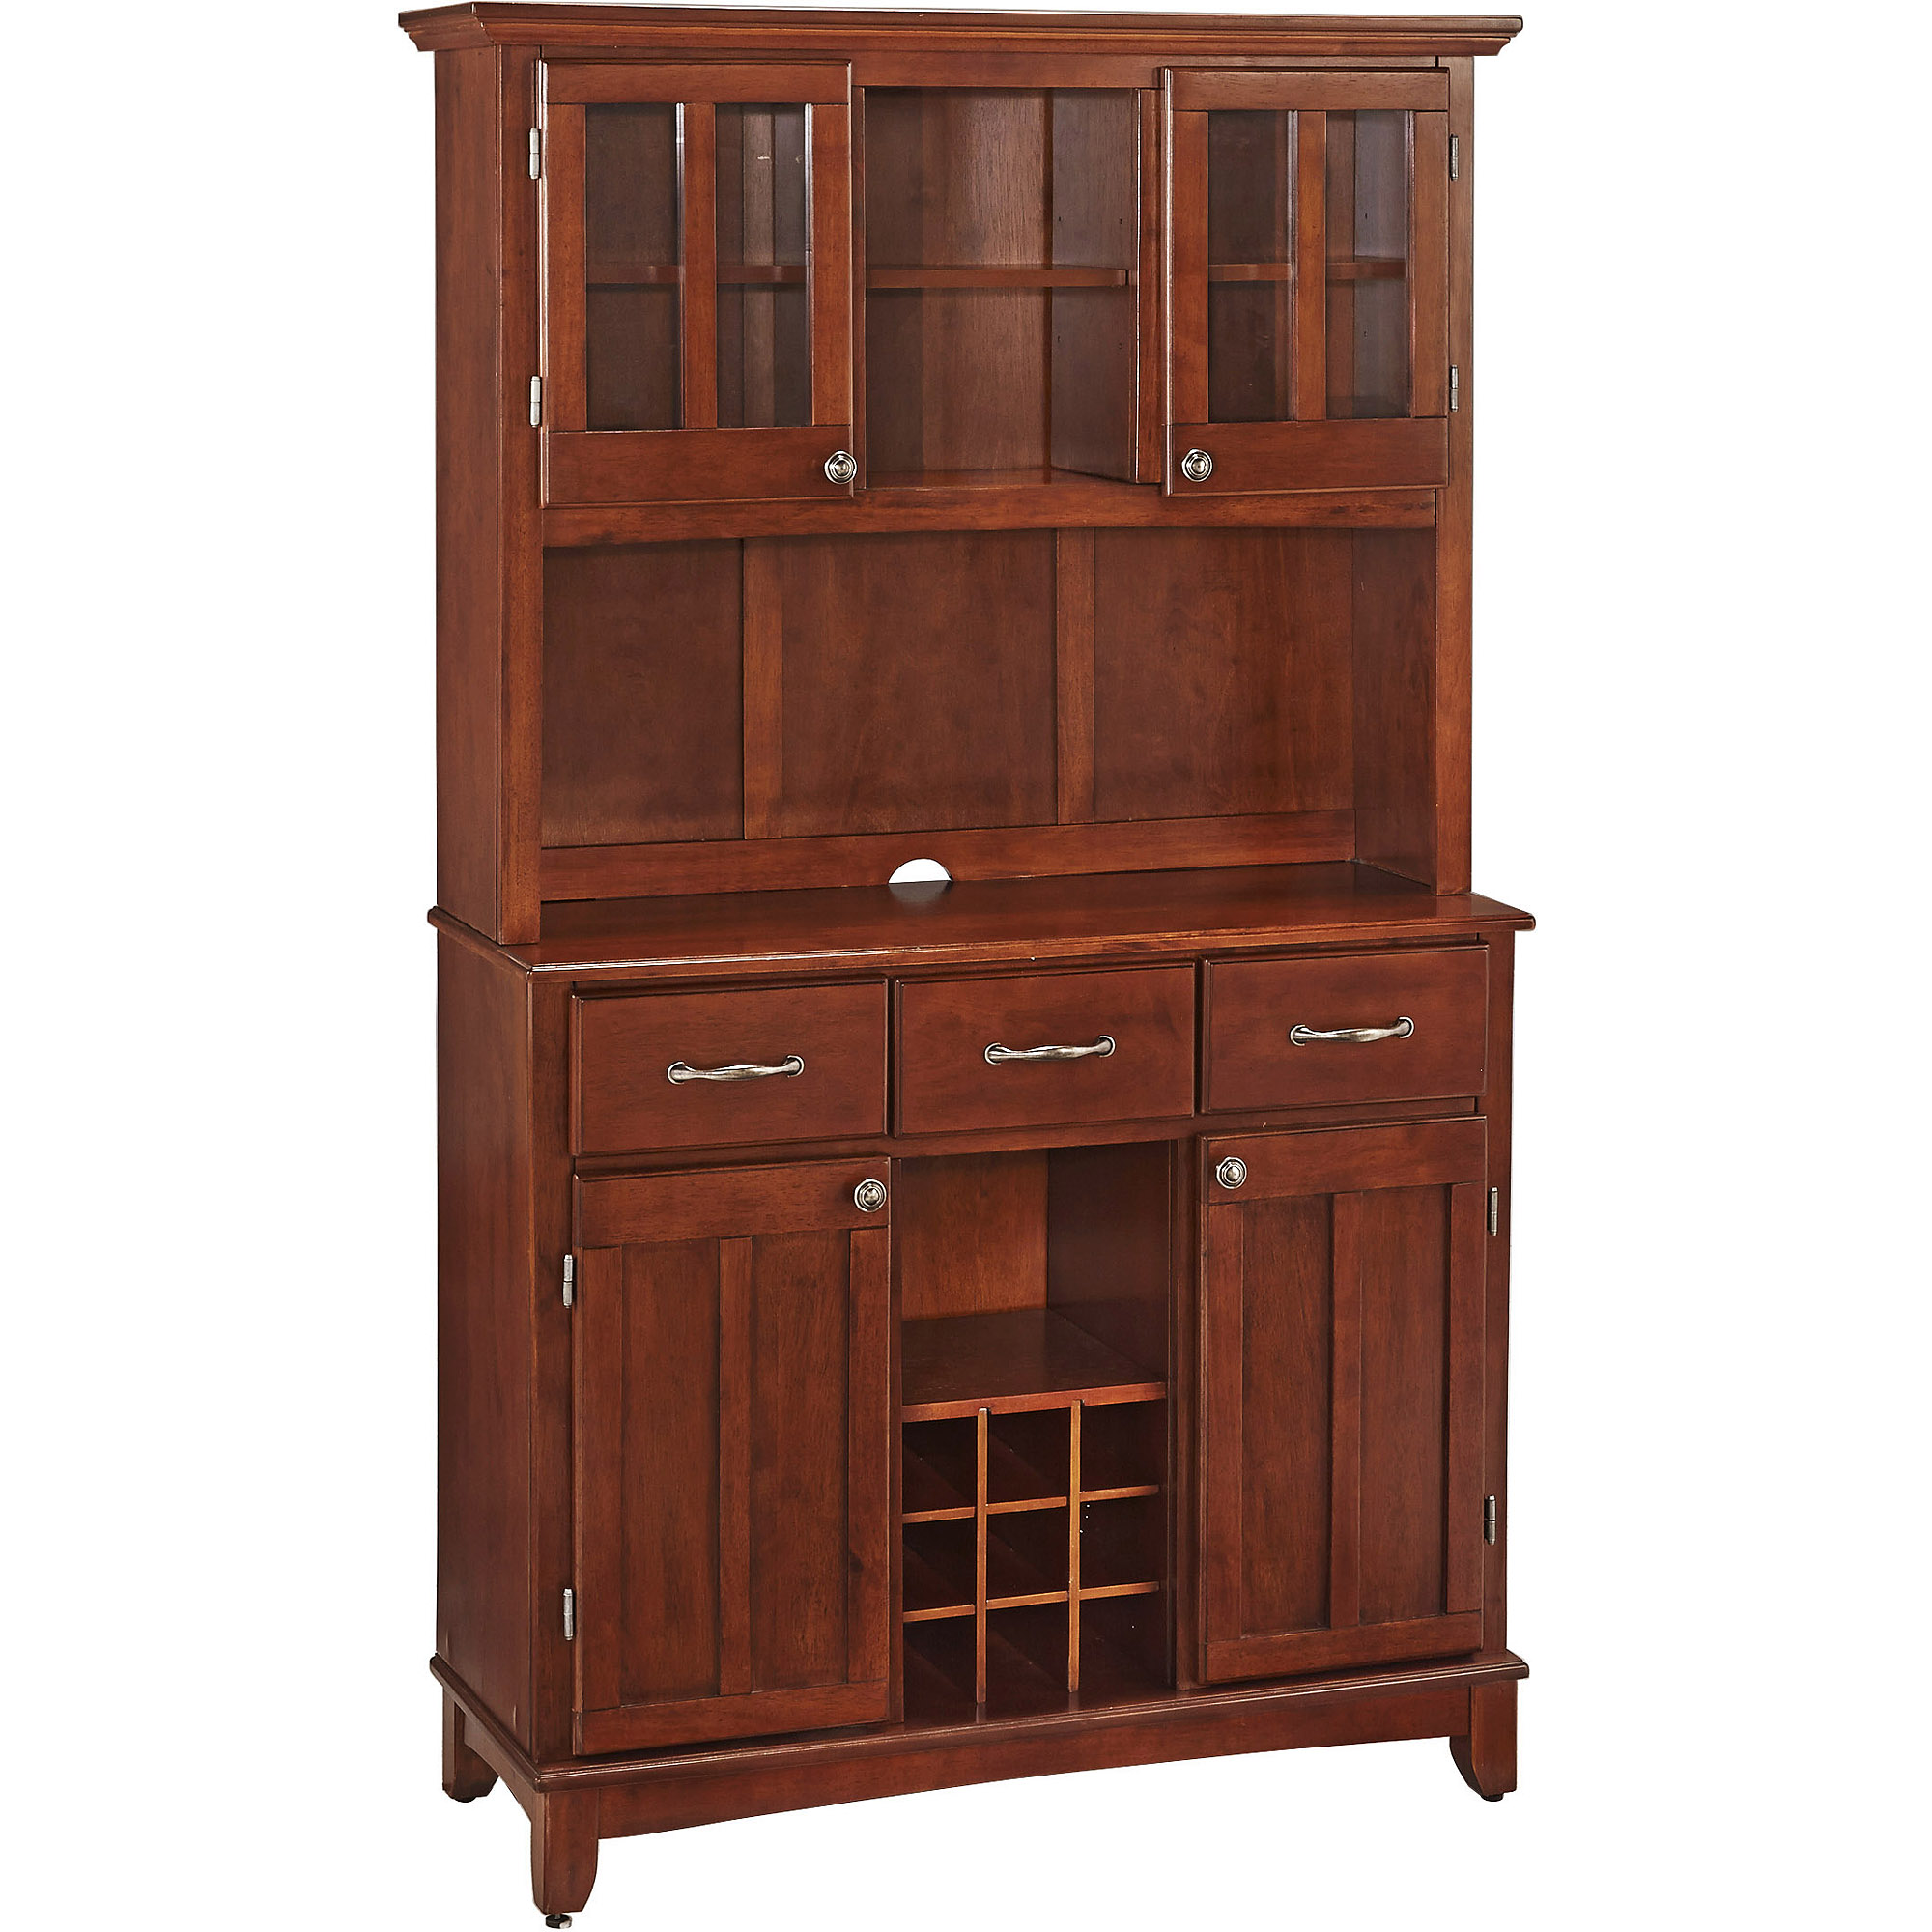 Home Styles Large Buffet & Two-Door Hutch, Cherry Finish